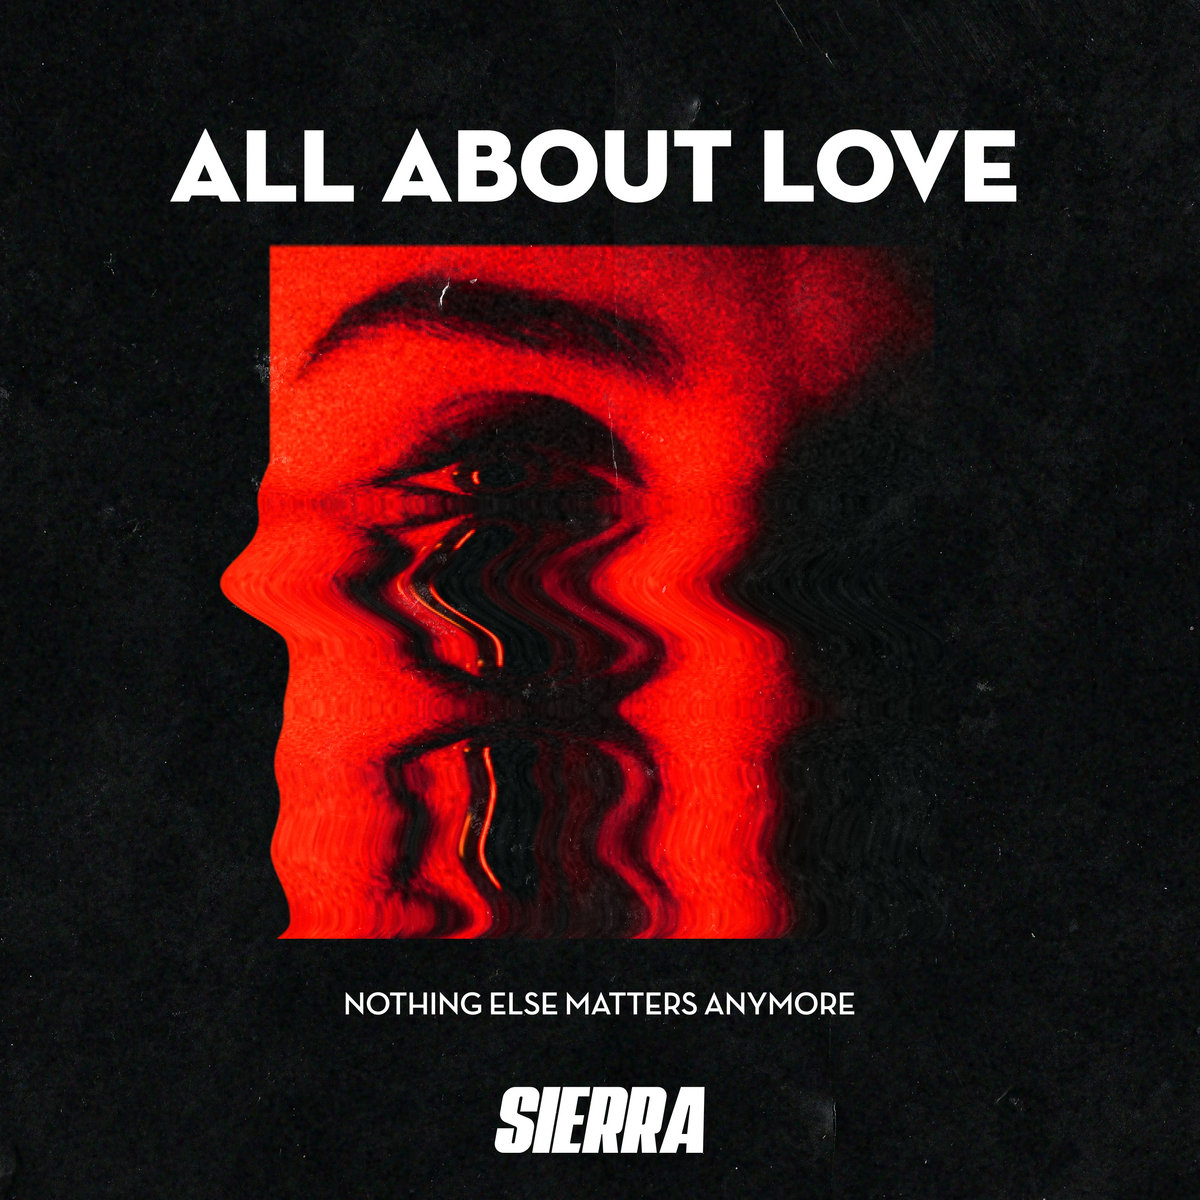 a3976196869 10 - Sierra drops 'All About Love'